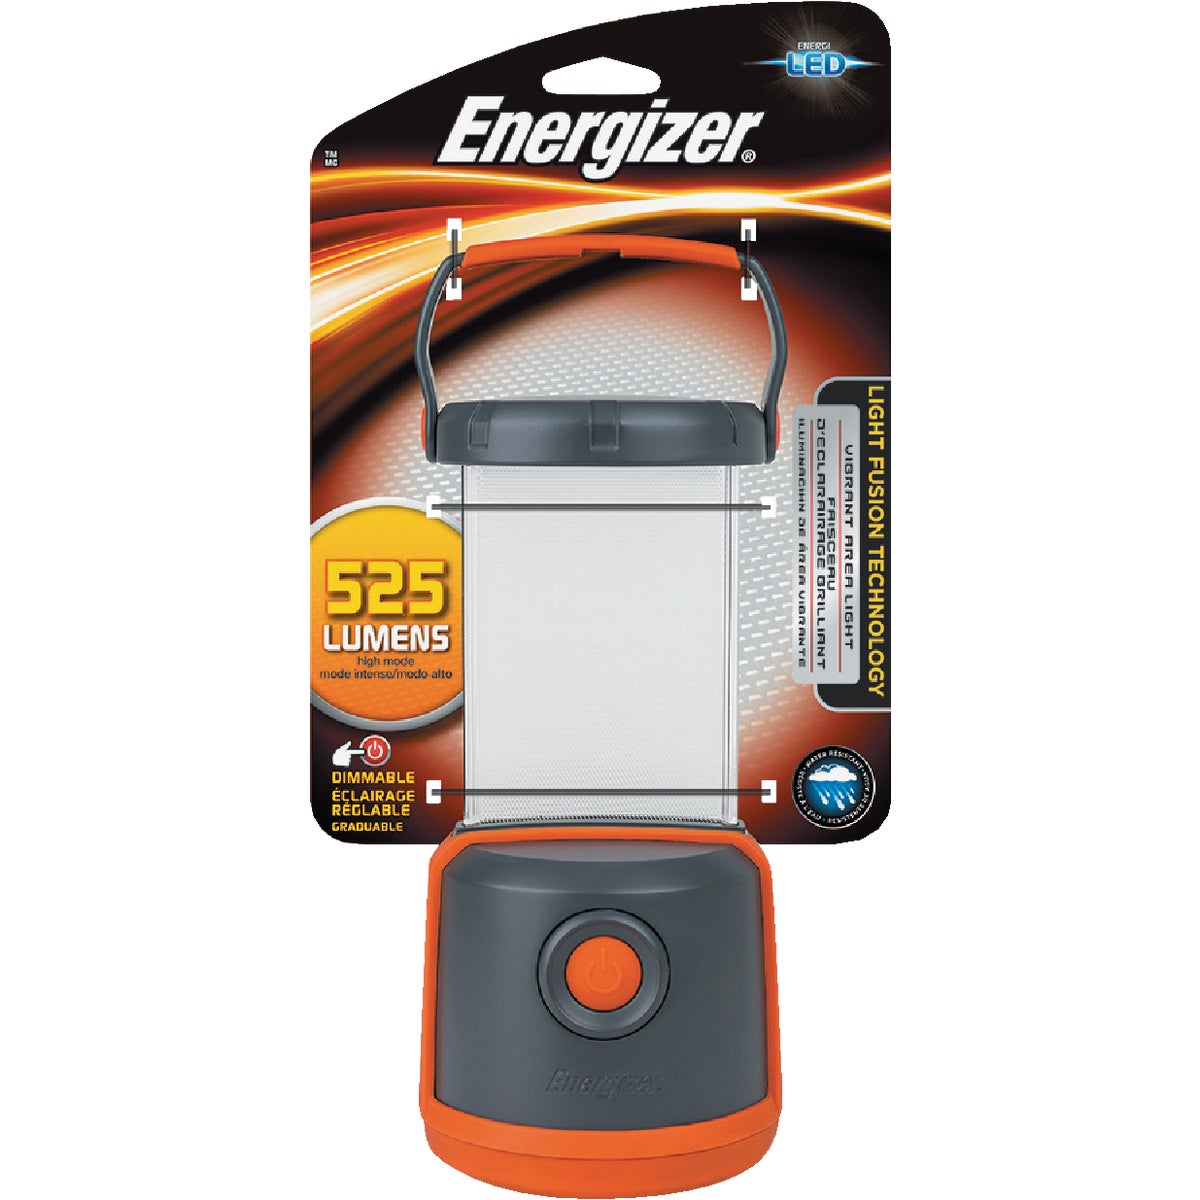 FUSION POP UP LANTERN - ENFPU41E by Energizer